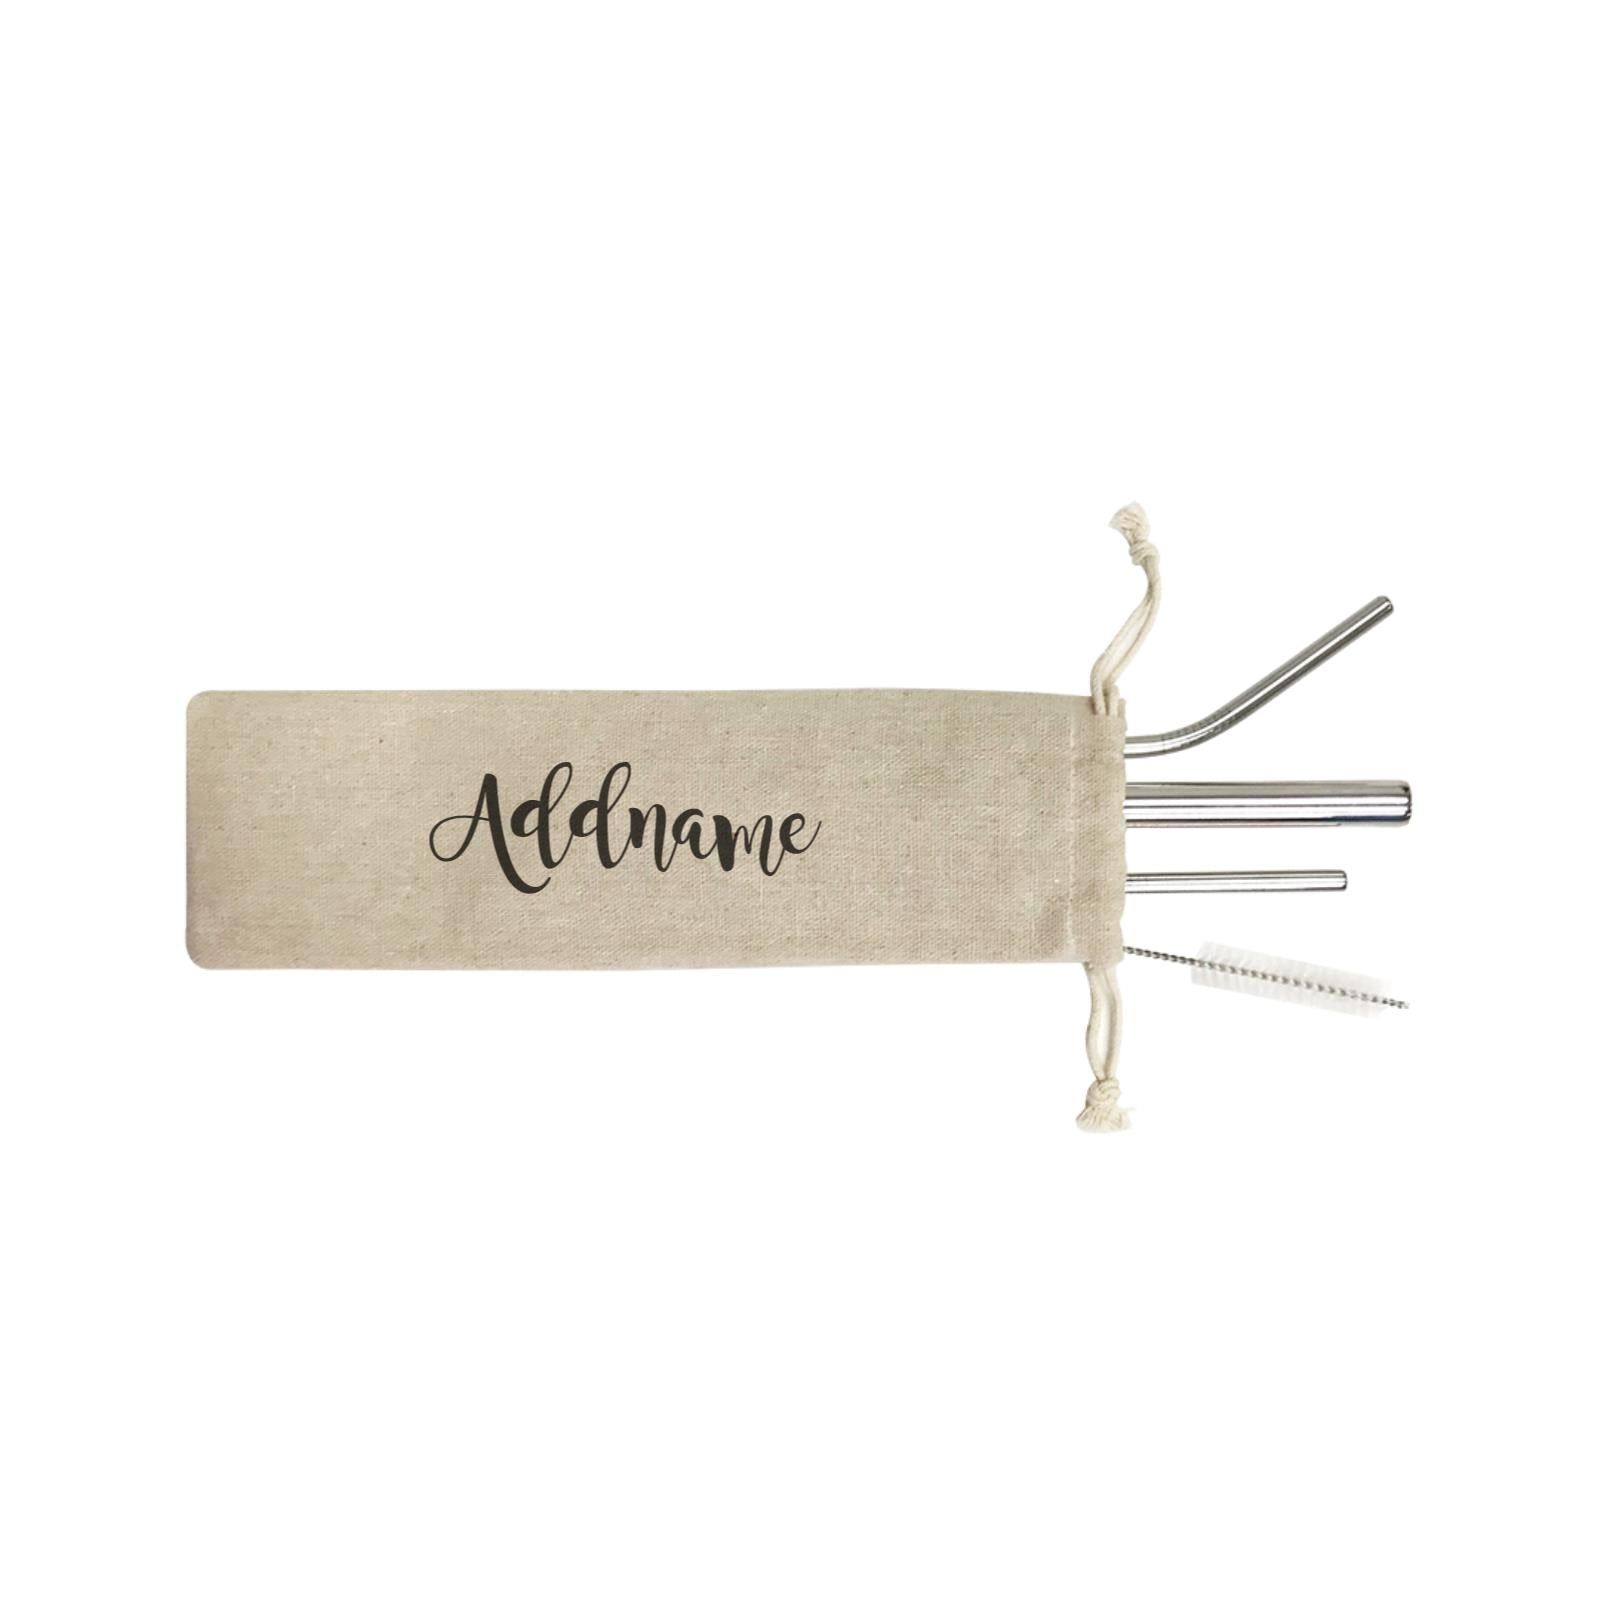 Basic Straw Magnolia Addname SB 4-In-1 Stainless Steel Straw Set in Satchel